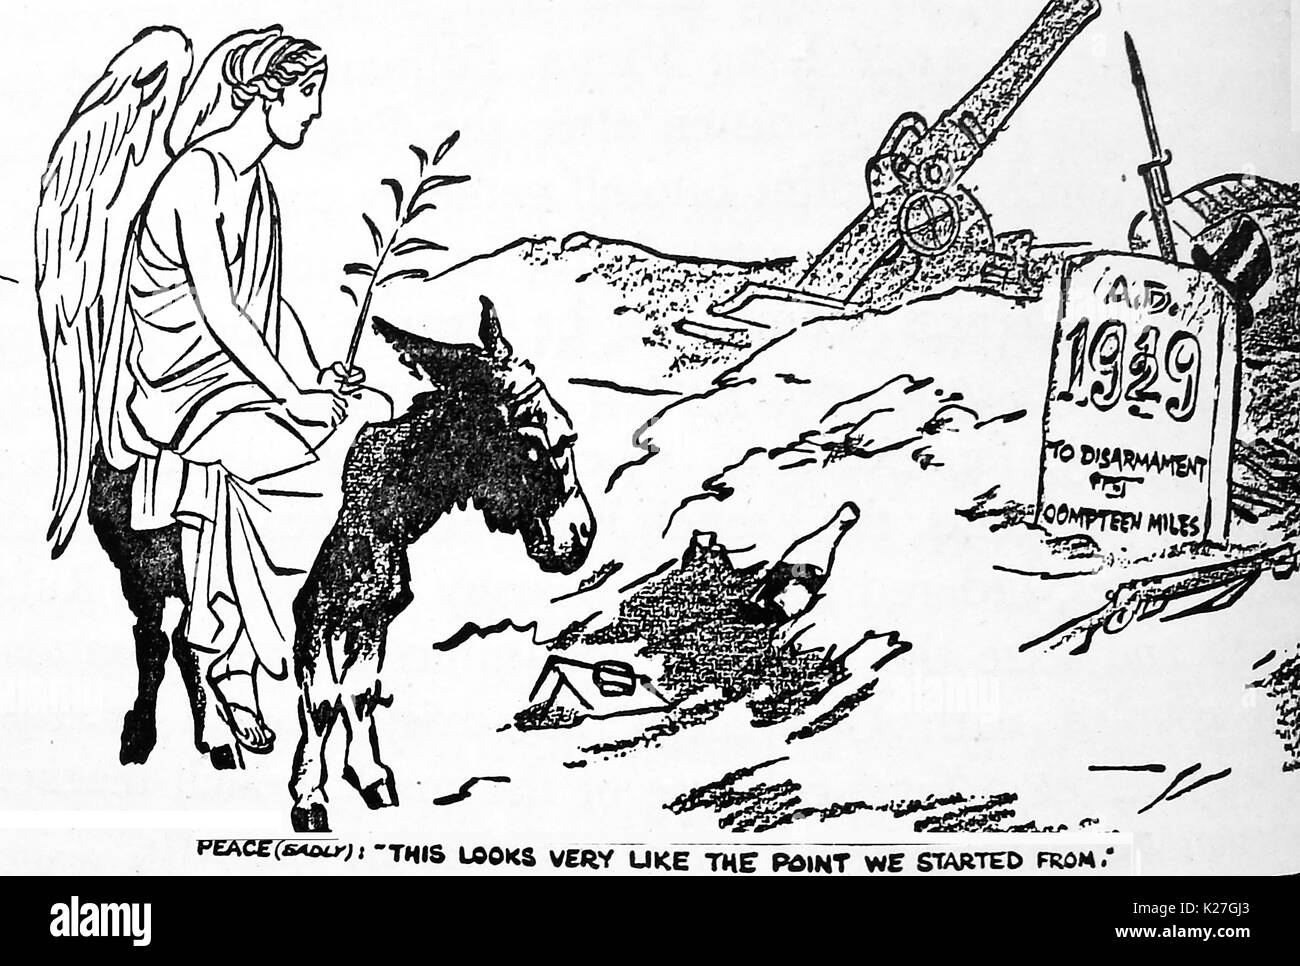 1929 - Political cartoon reflecting the deja-vu element of disarmament talks, showing the figure of peace on a donkey - Stock Image